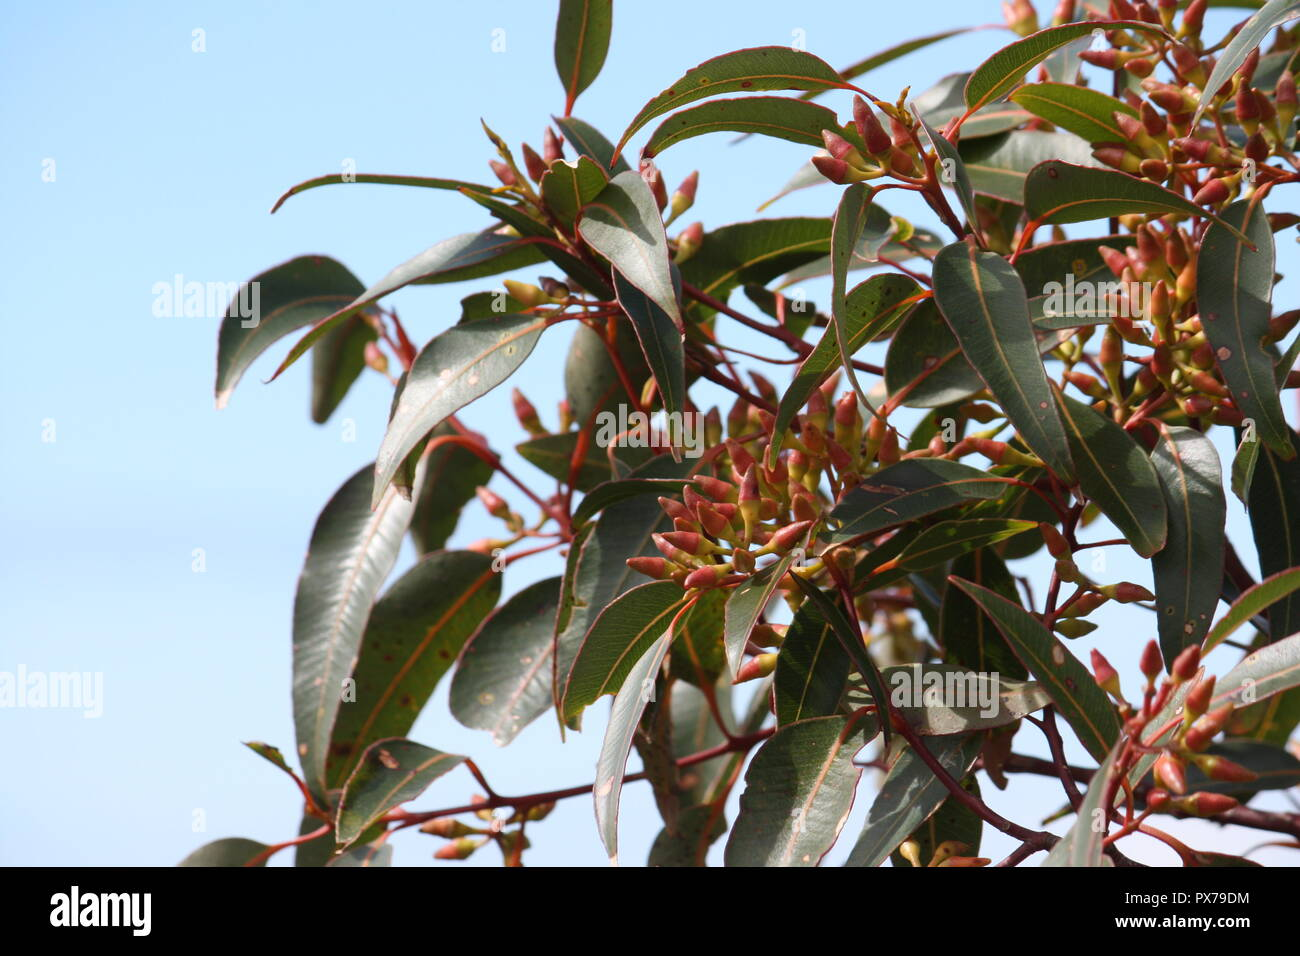 The eucalyptus tree or gum tree, is one of the most dominate and beautiful floras of Australia - Stock Image